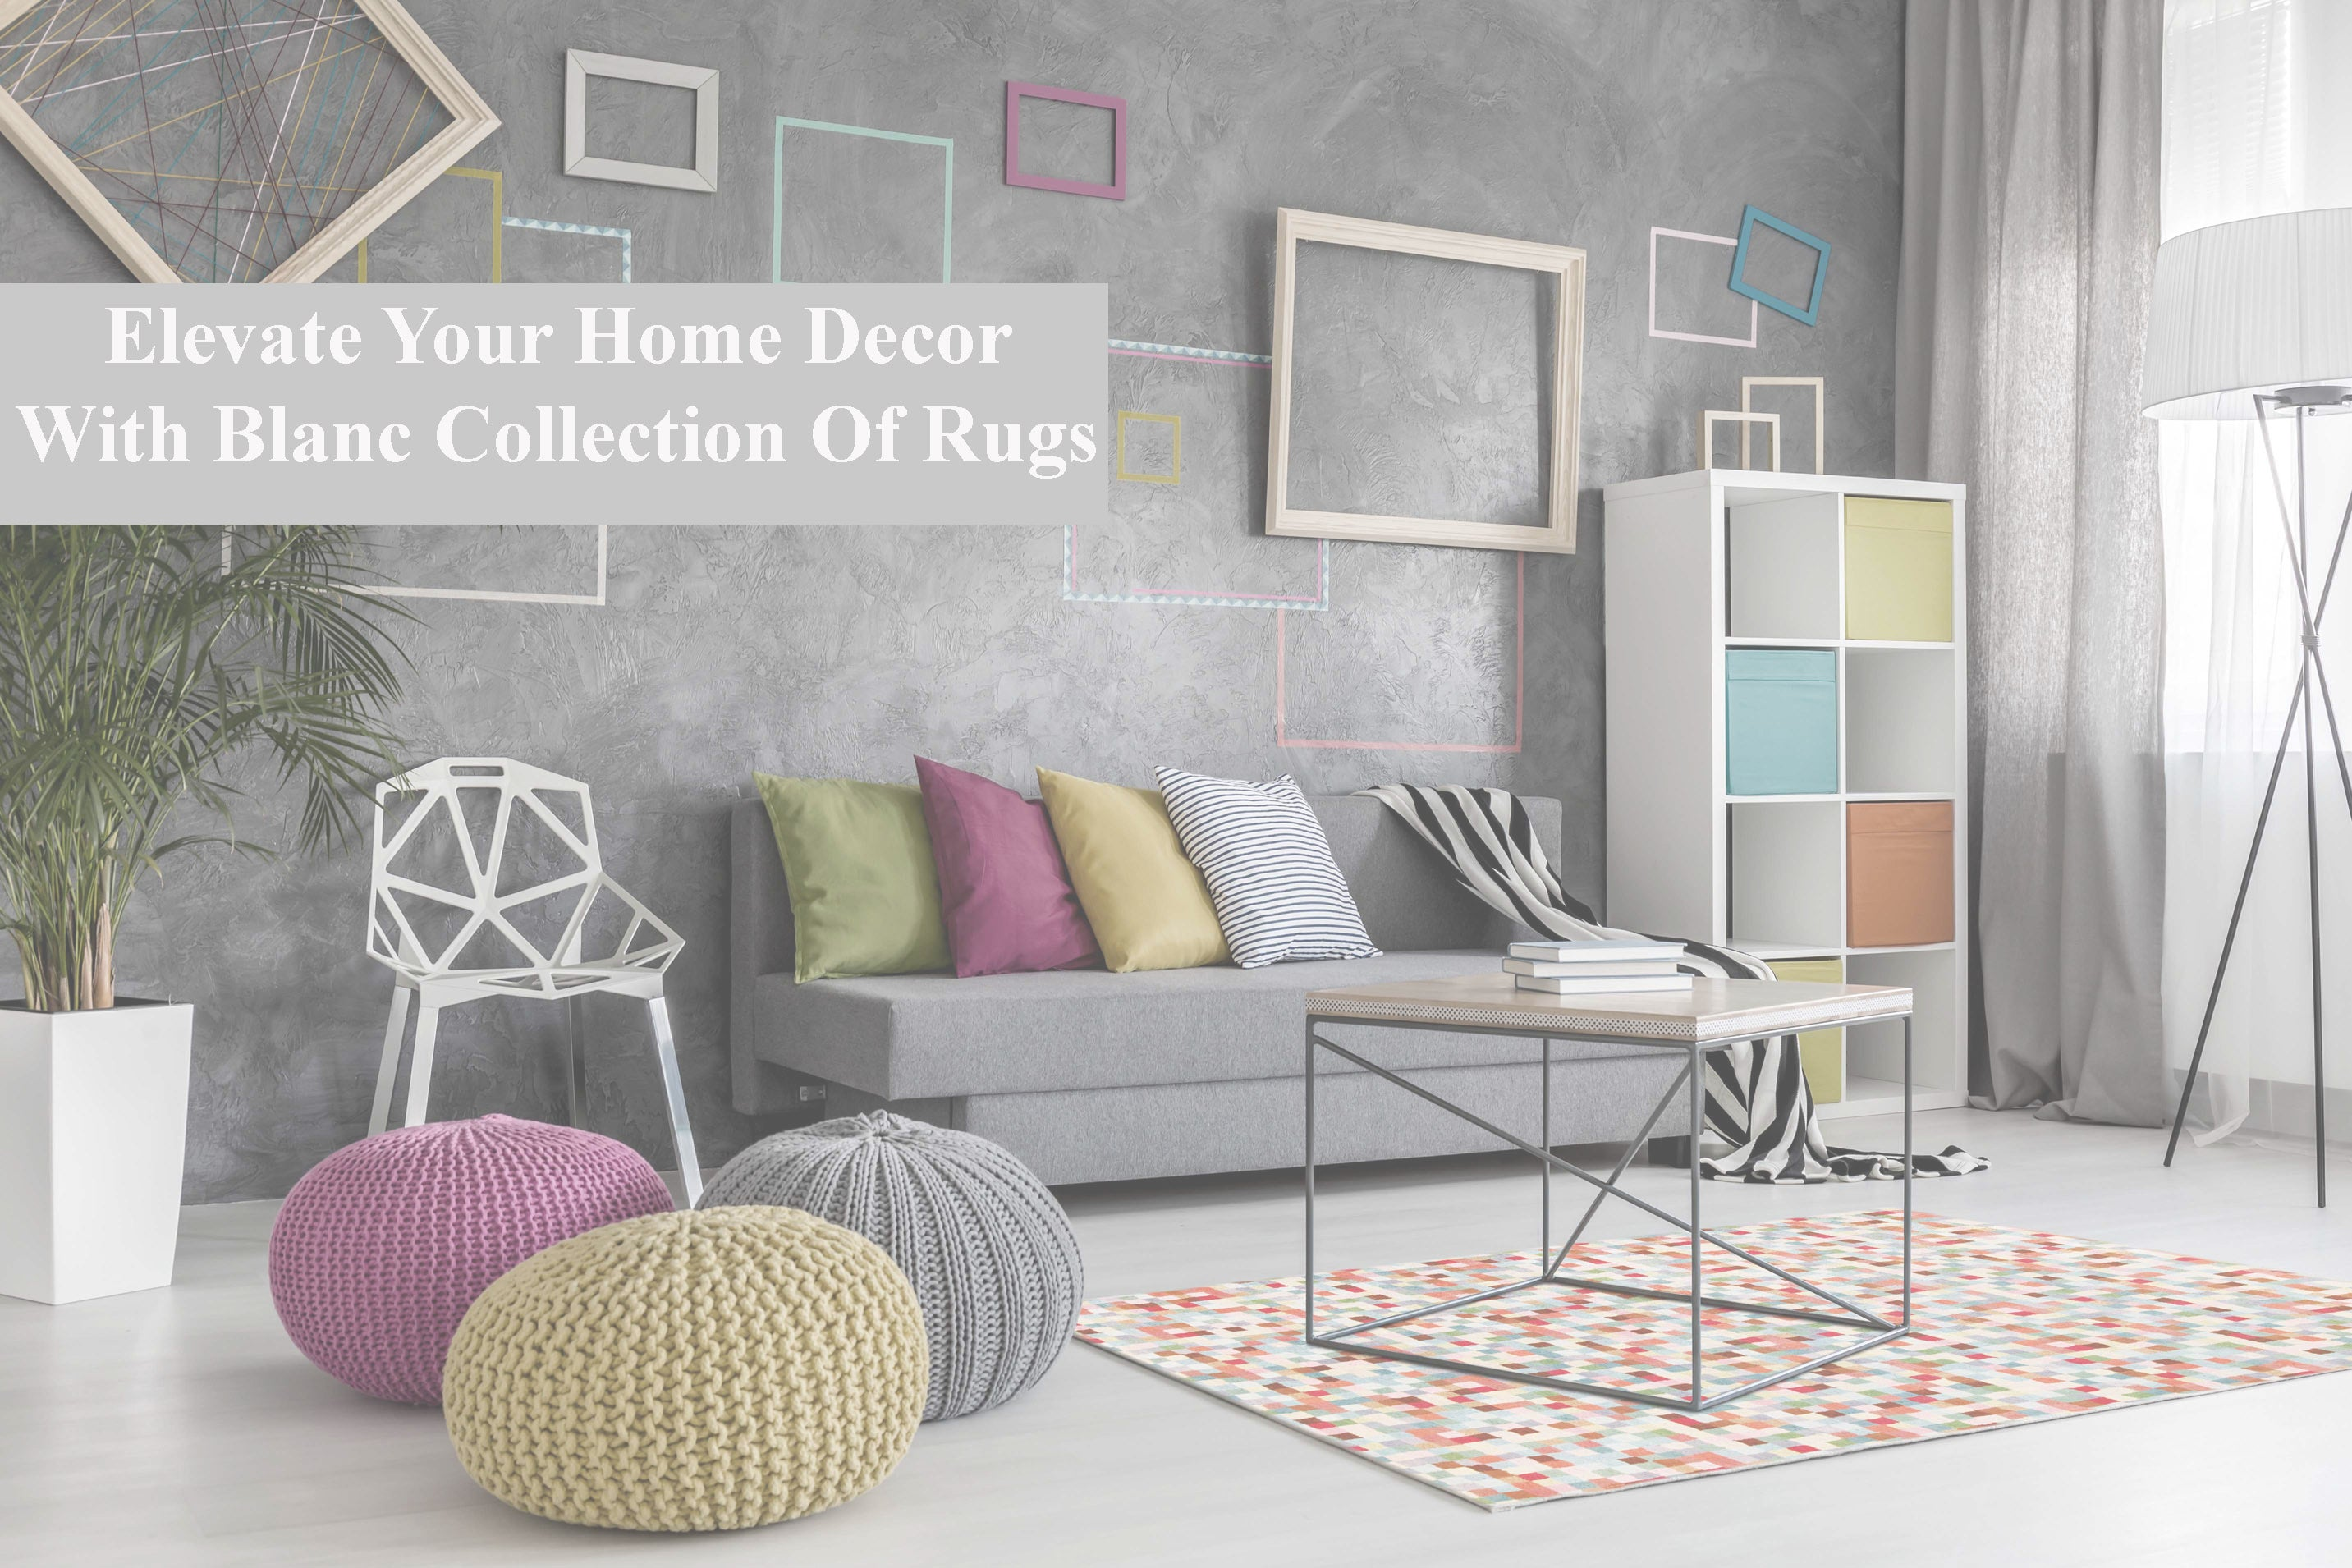 Elevate Your Home Decor with Blanc Collection of Rugs